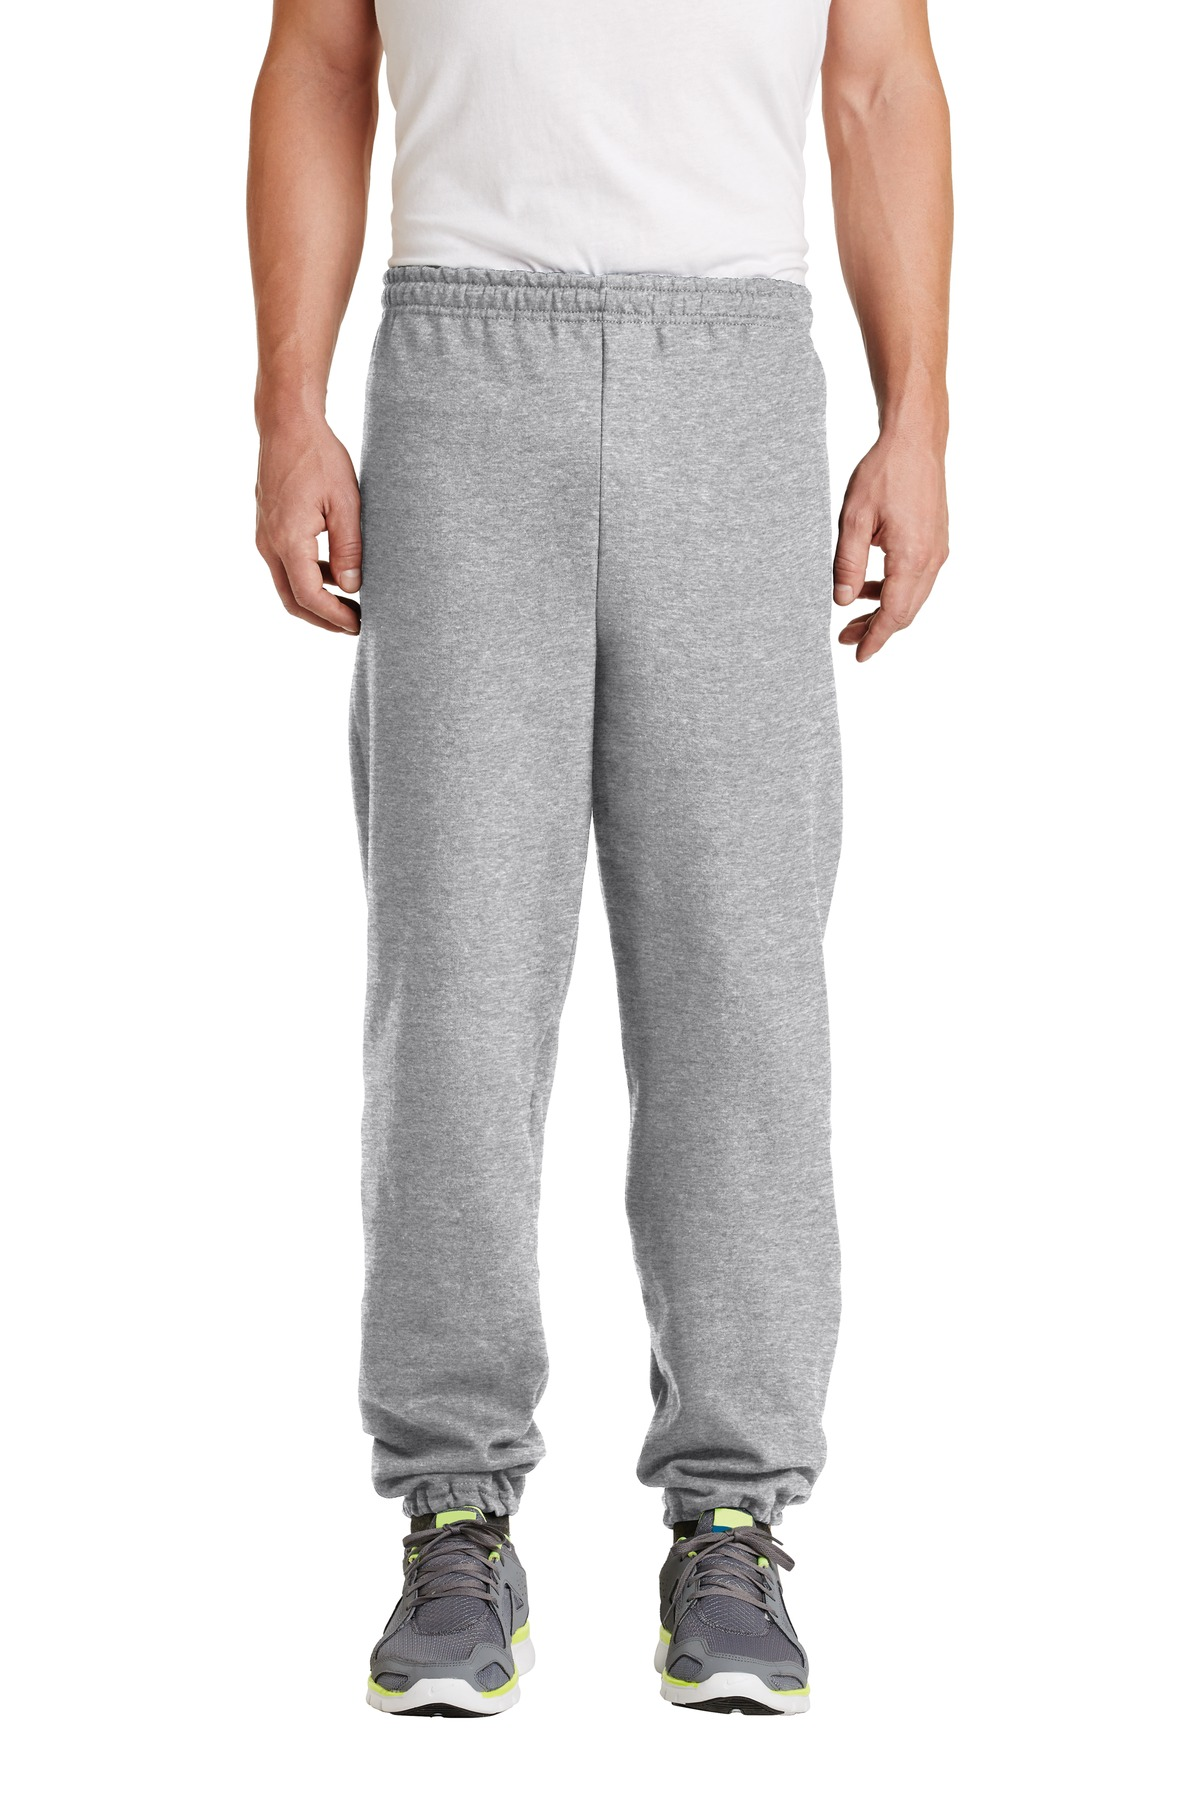 Gildan ®  - Heavy Blend™ Sweatpant.  18200 - Sport Grey